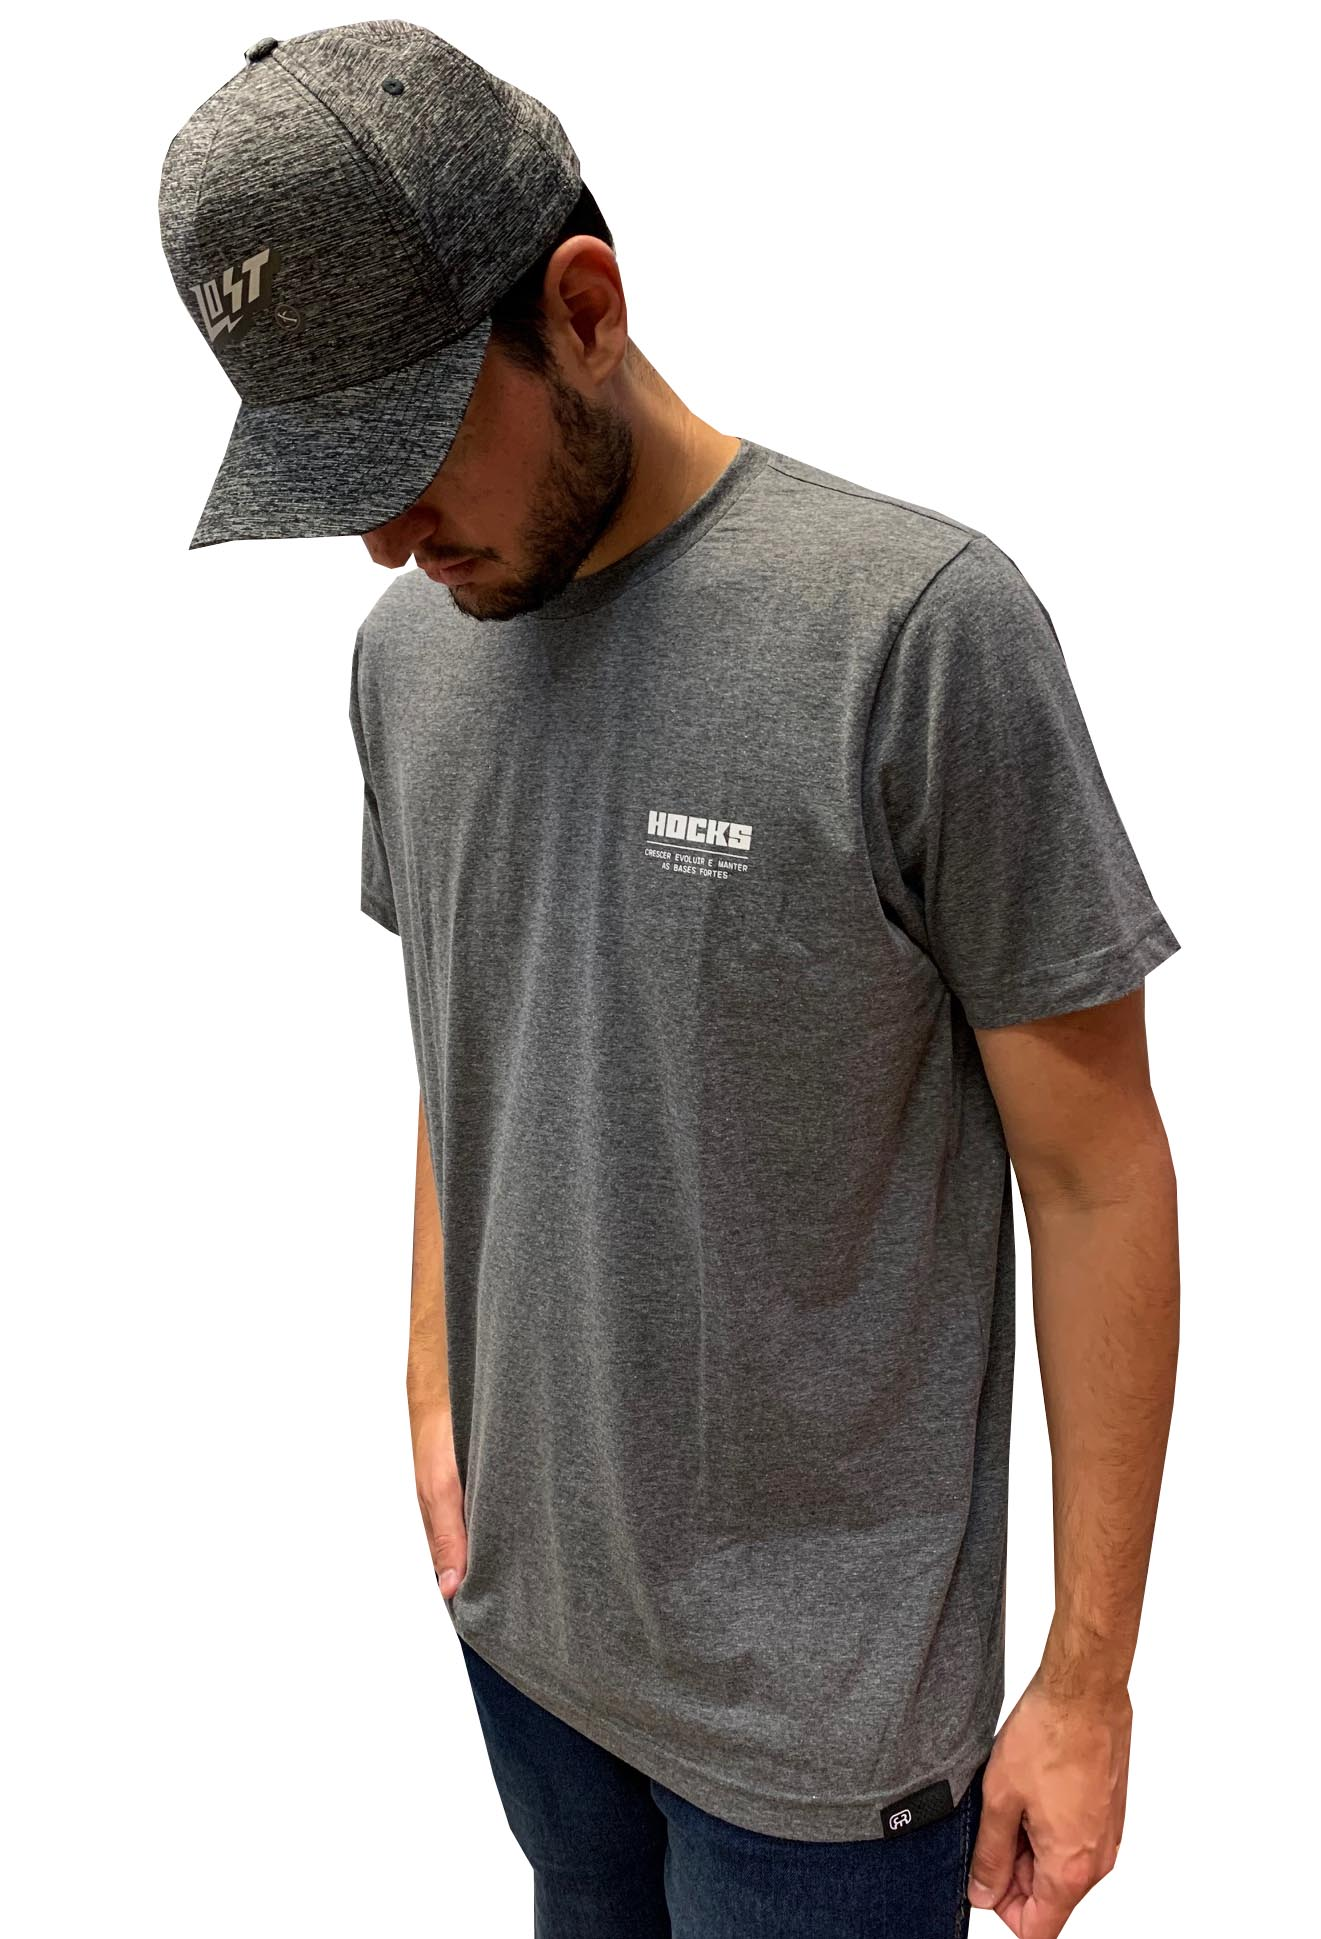 Camiseta Hocks Slogan H20075 Masculina 29504